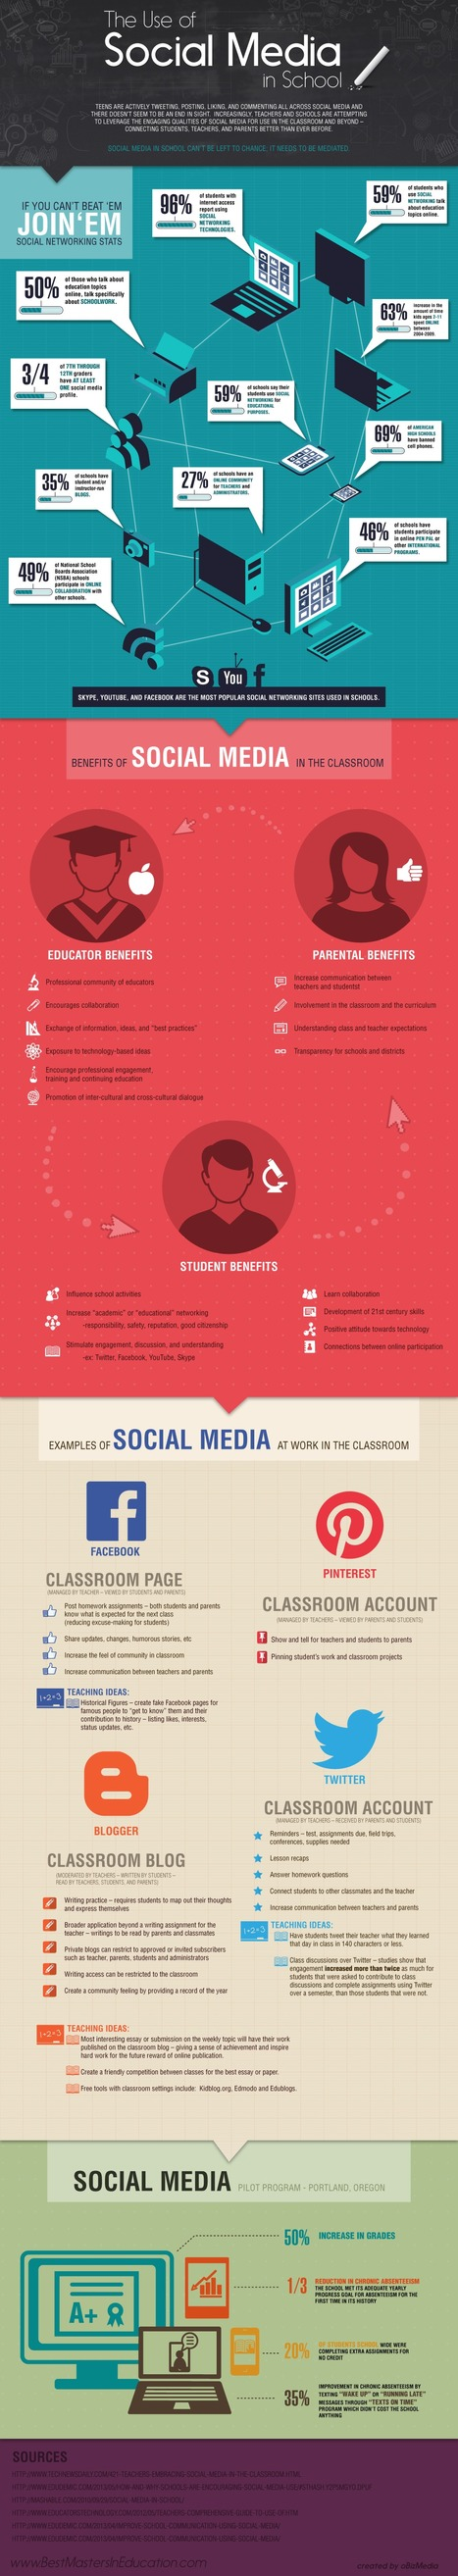 Social Media 101: Is There a Place For Social Media in Classrooms? [Infographic] | Technologies numériques & Education | Scoop.it